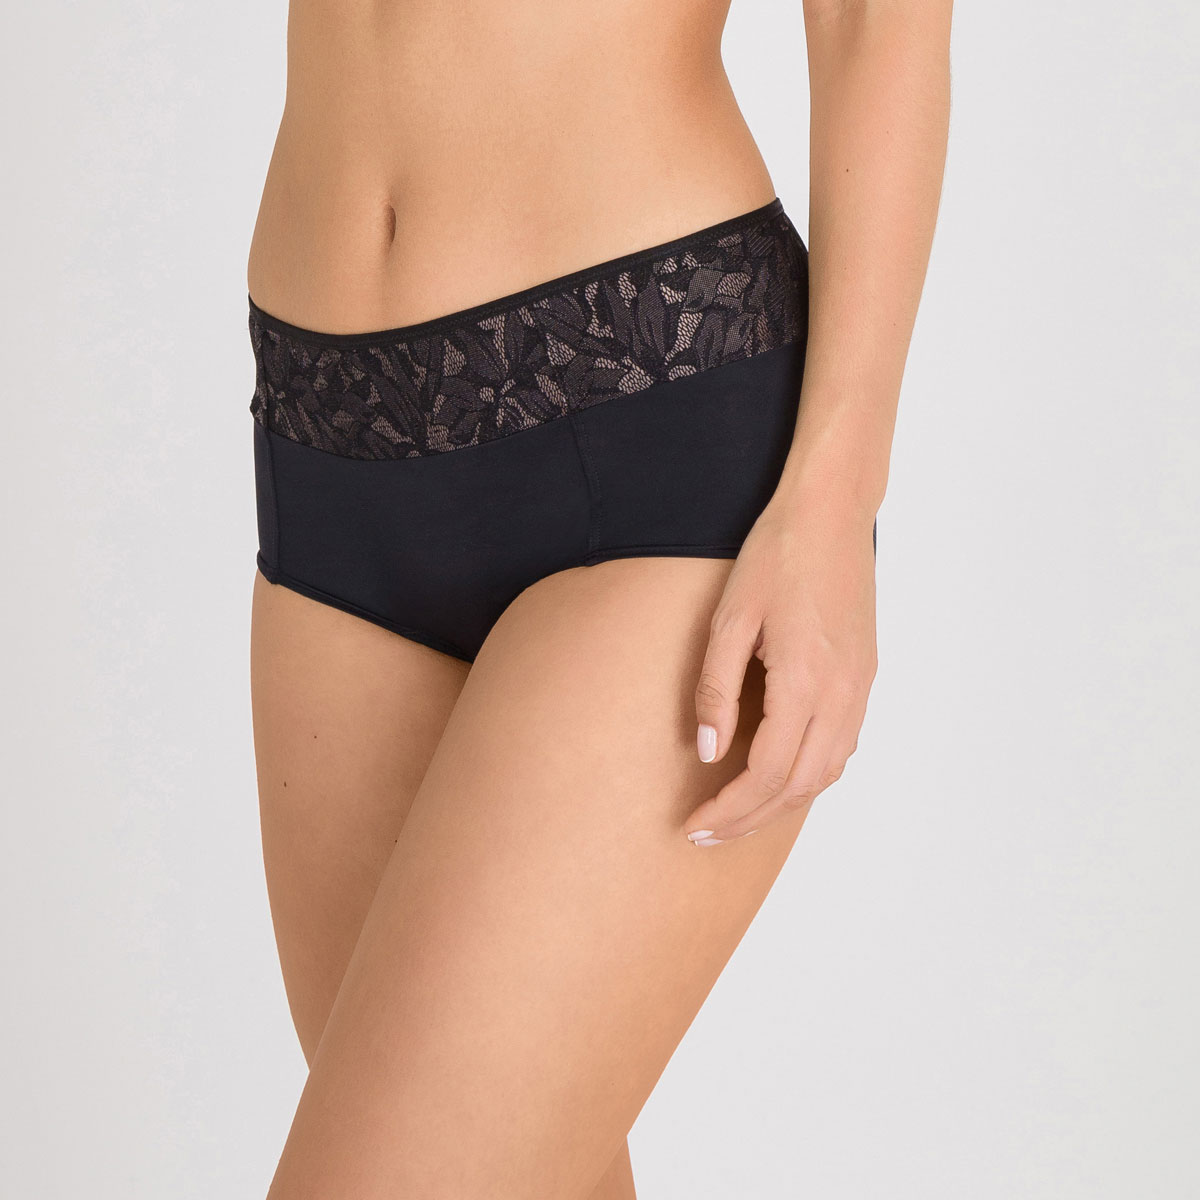 Shorty in Black and Grey - Ideal Beauty Lace-PLAYTEX